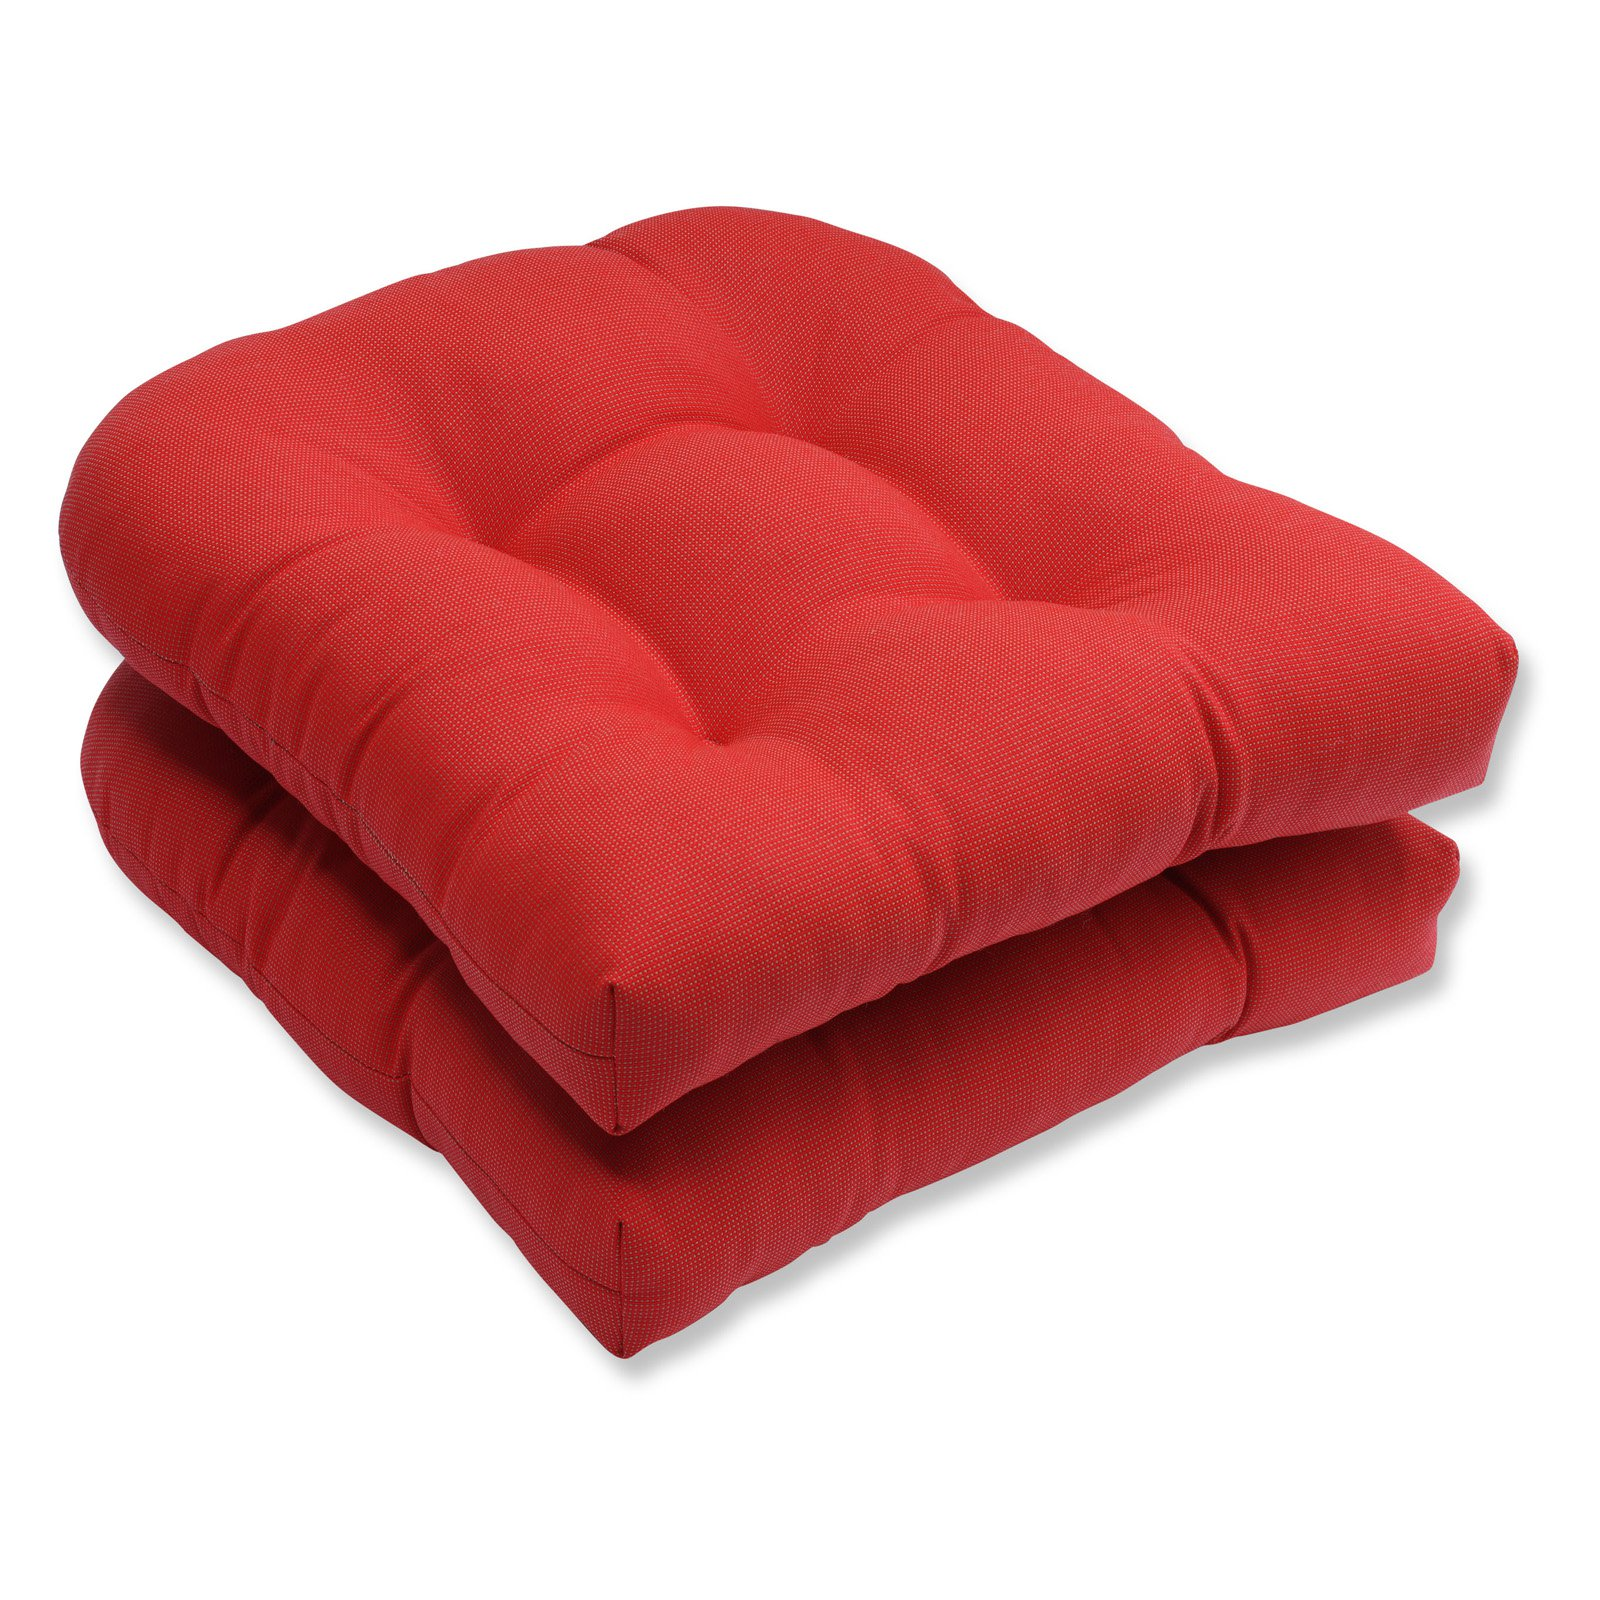 Pillow Perfect Outdoor/ Indoor Tweed Red Wicker Seat Cushion (Set of 2)